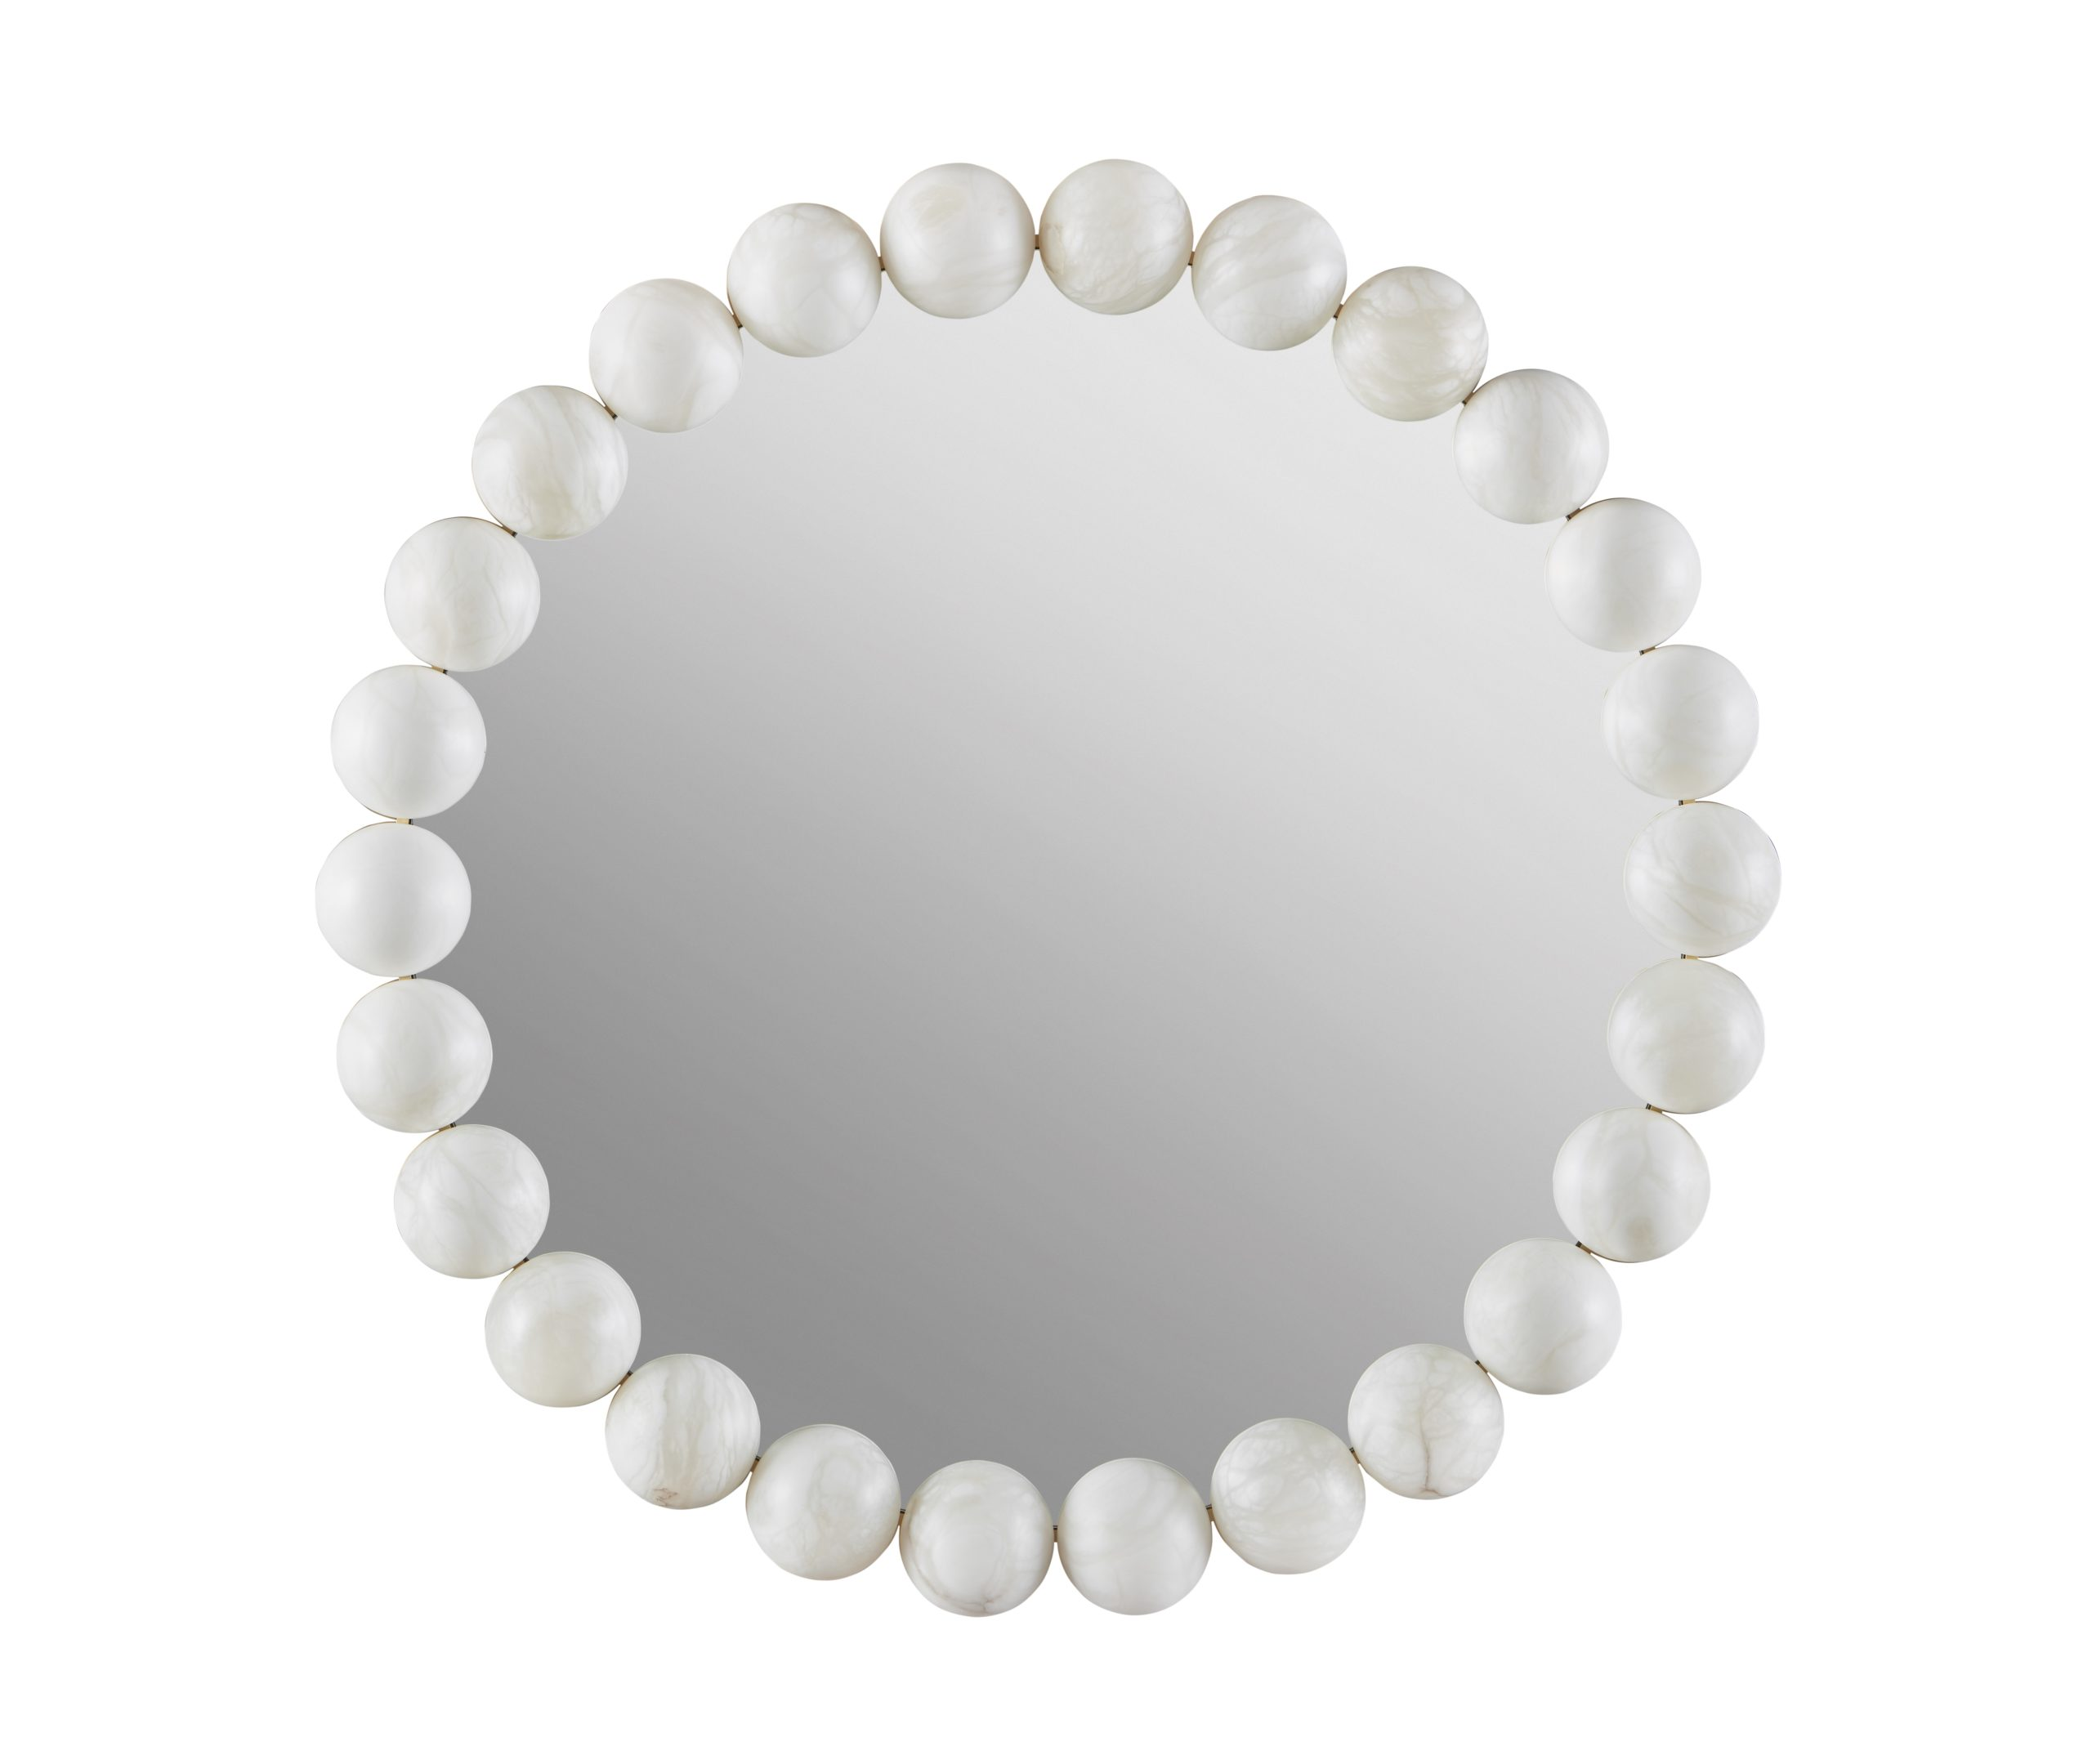 Baker_products_pearl_mirror_BAA3212_FRONT-scaled-1